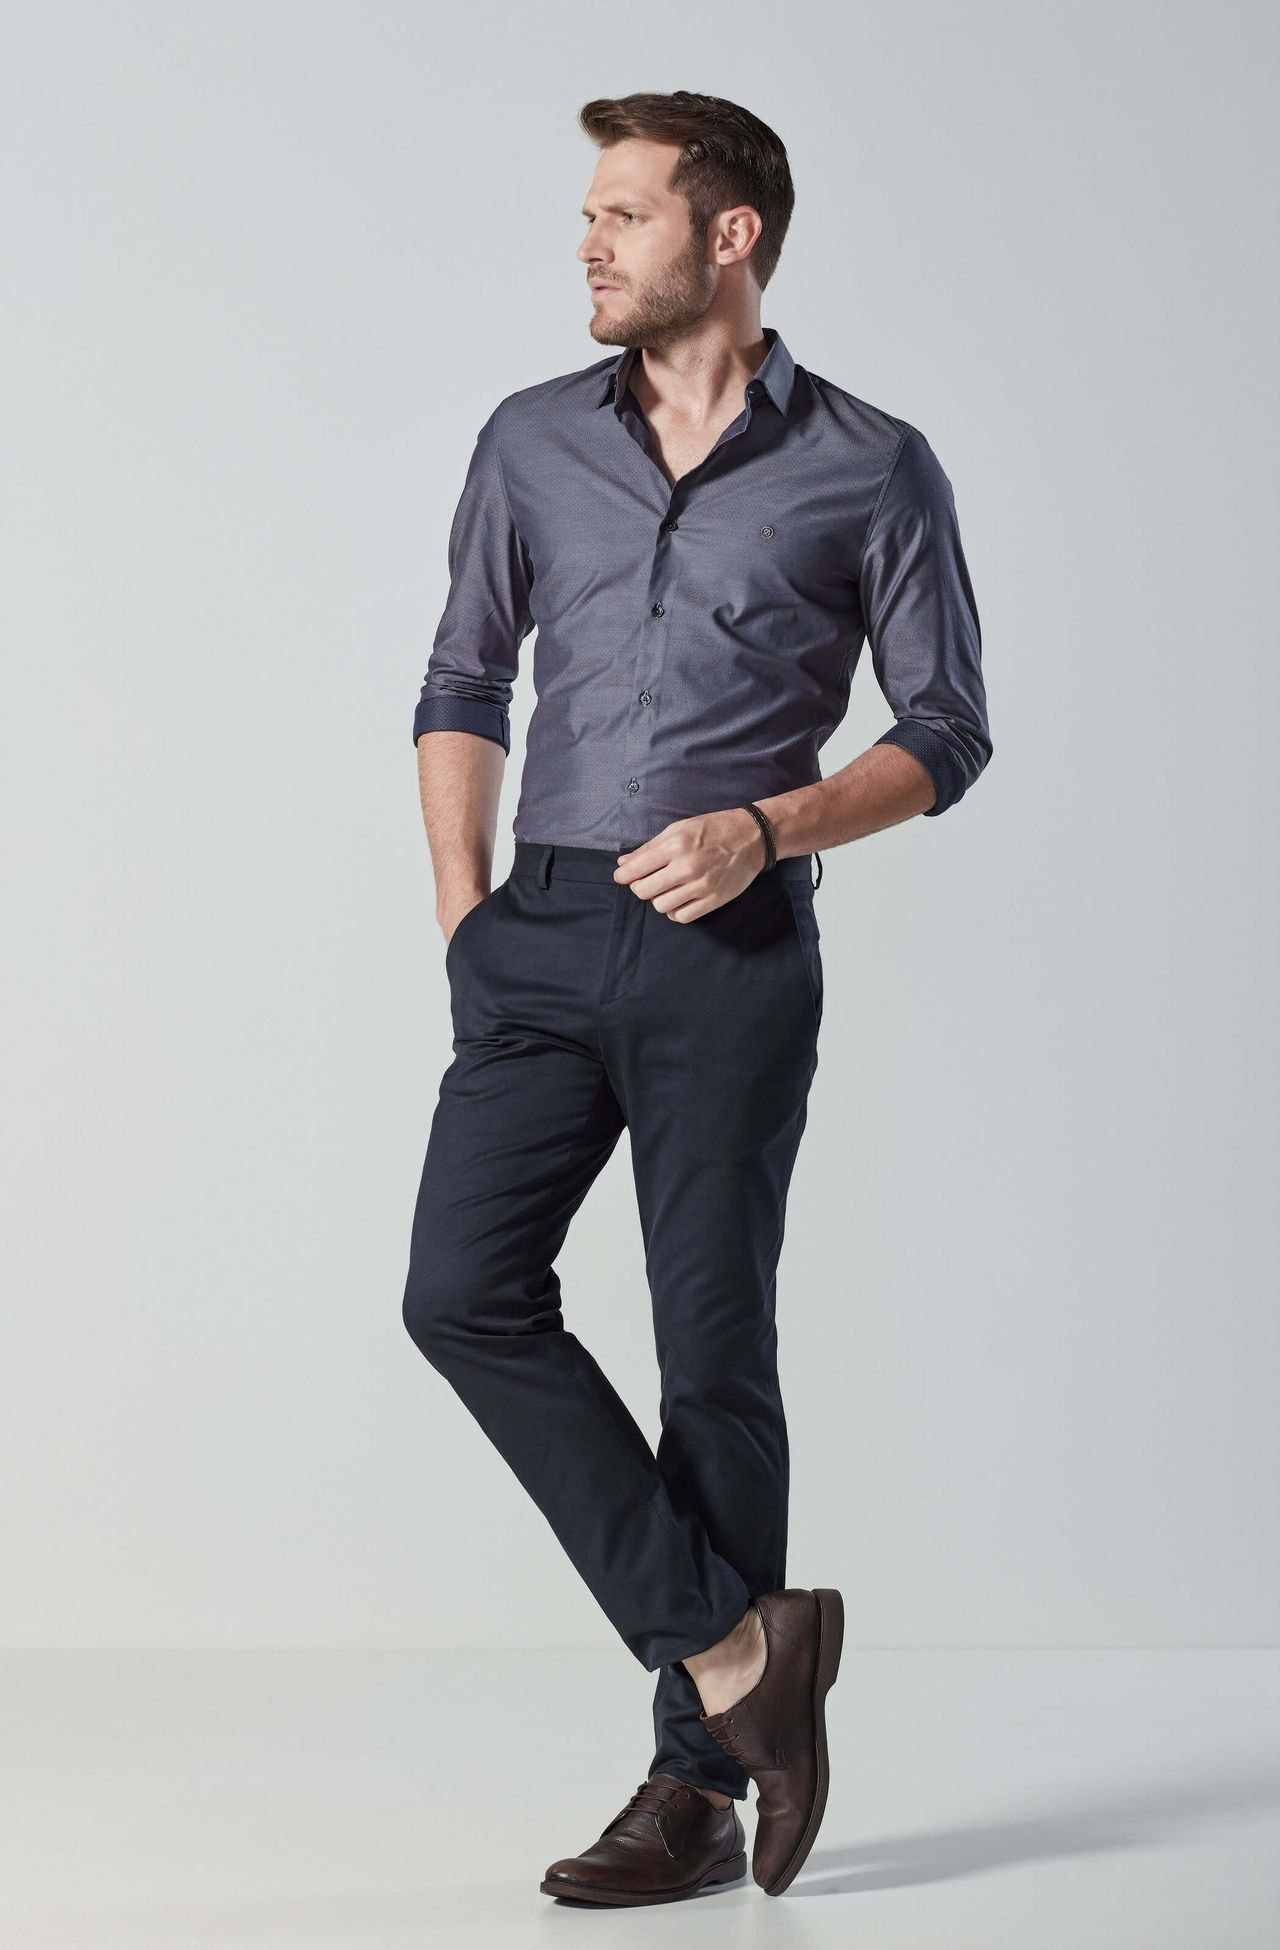 2603XWZ41784_985_2-CAMISA-WORK-SLIM-FIT-ML-MAQUINETADA